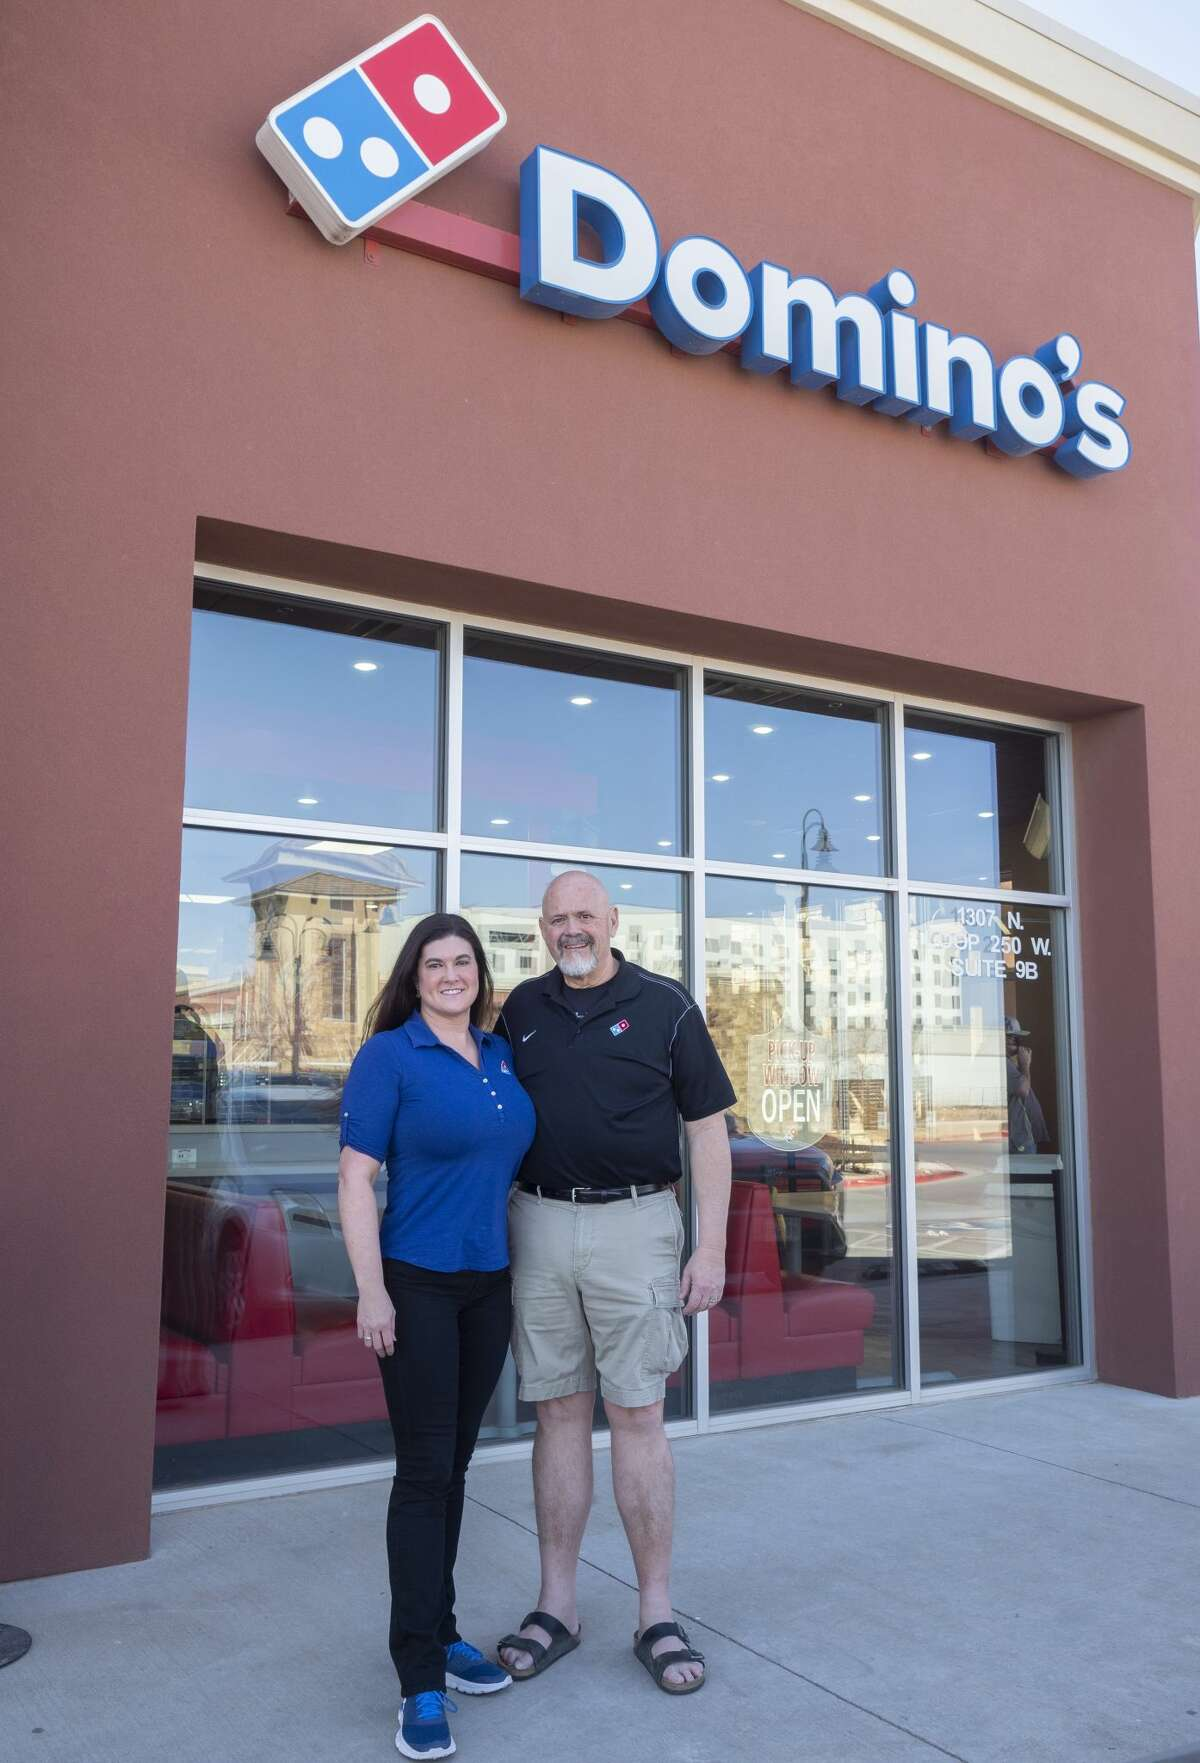 Cassie and Jim Gerety, owners of several Domino's franchises from Pecos to Abilene, experienced many challenges throughout the pandemic. Now one year into the pandemic, the couple is hoping that the adjustments and changes made during that time will allow their businesses to continue to prosper even in difficult and uncertain times.